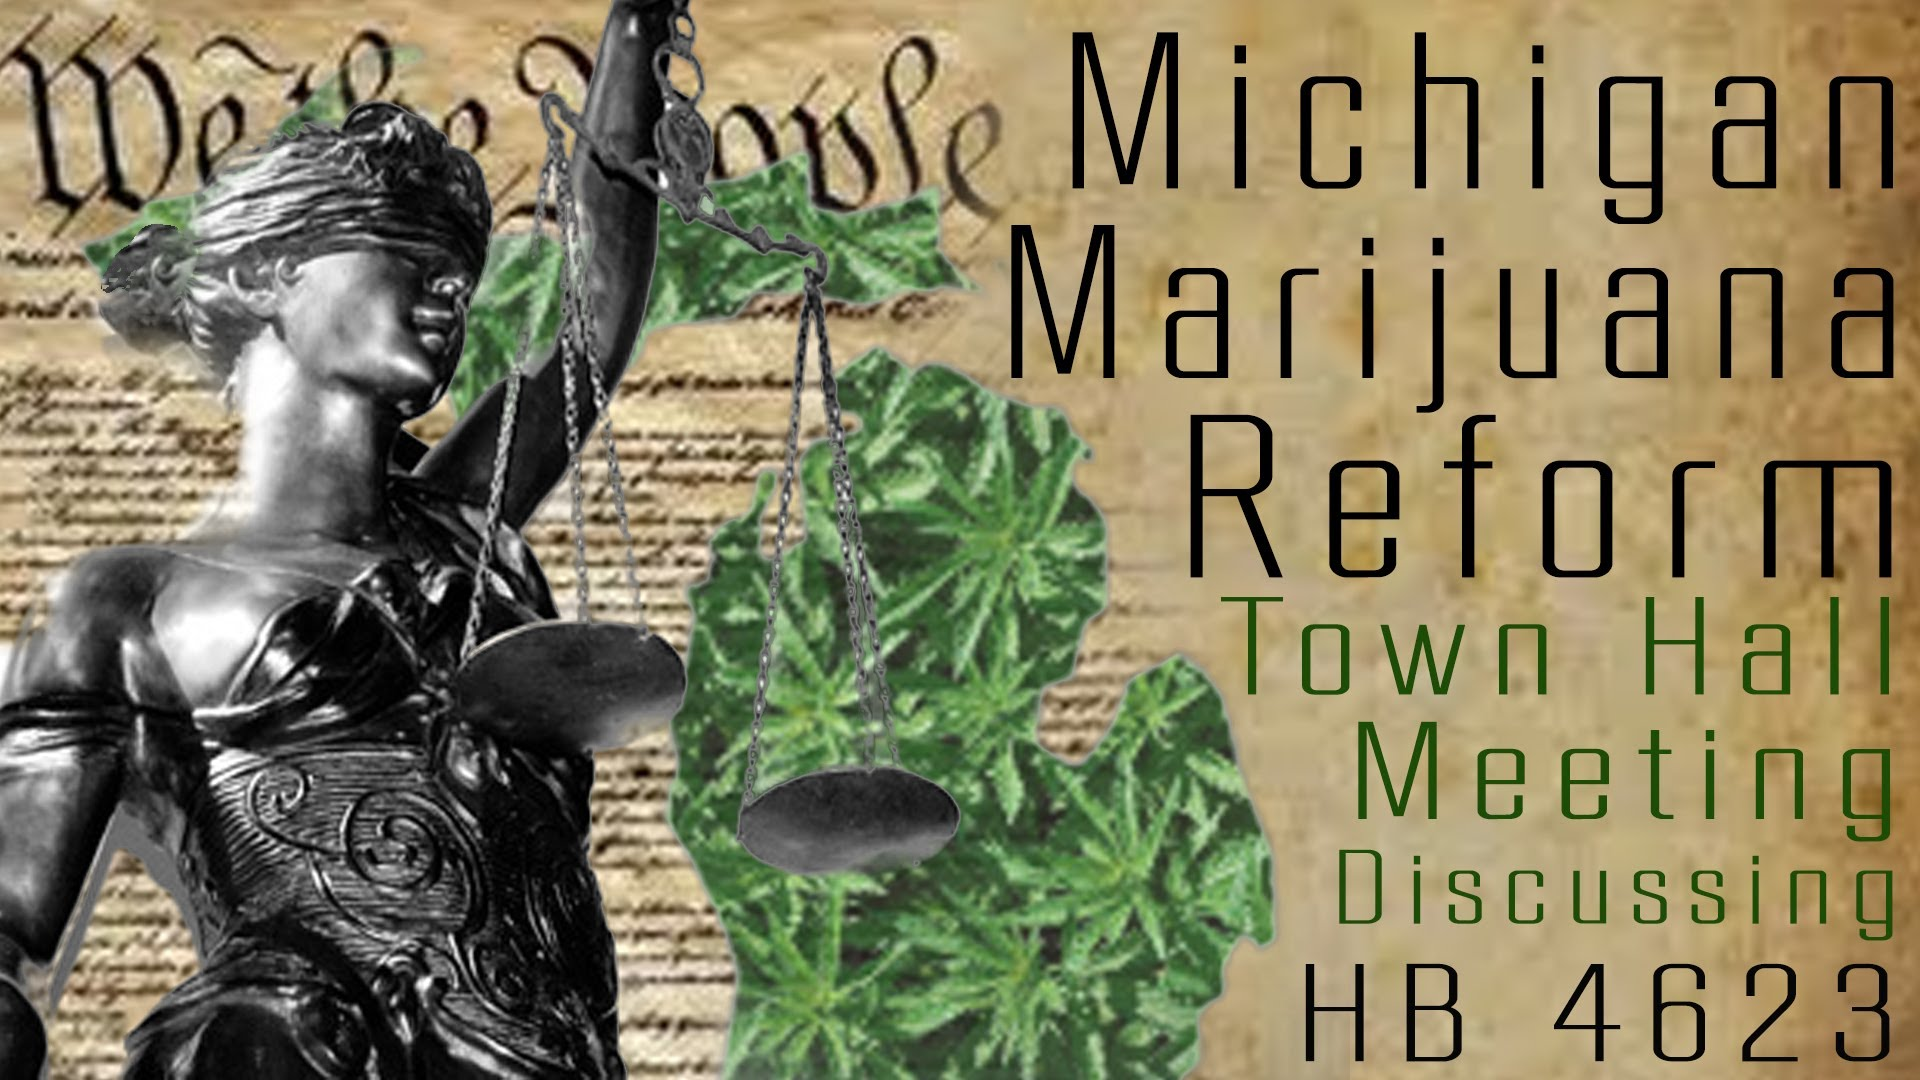 Michigan Marijuana Reform: Town Meeting to discuss Decriminalization and HB 4623